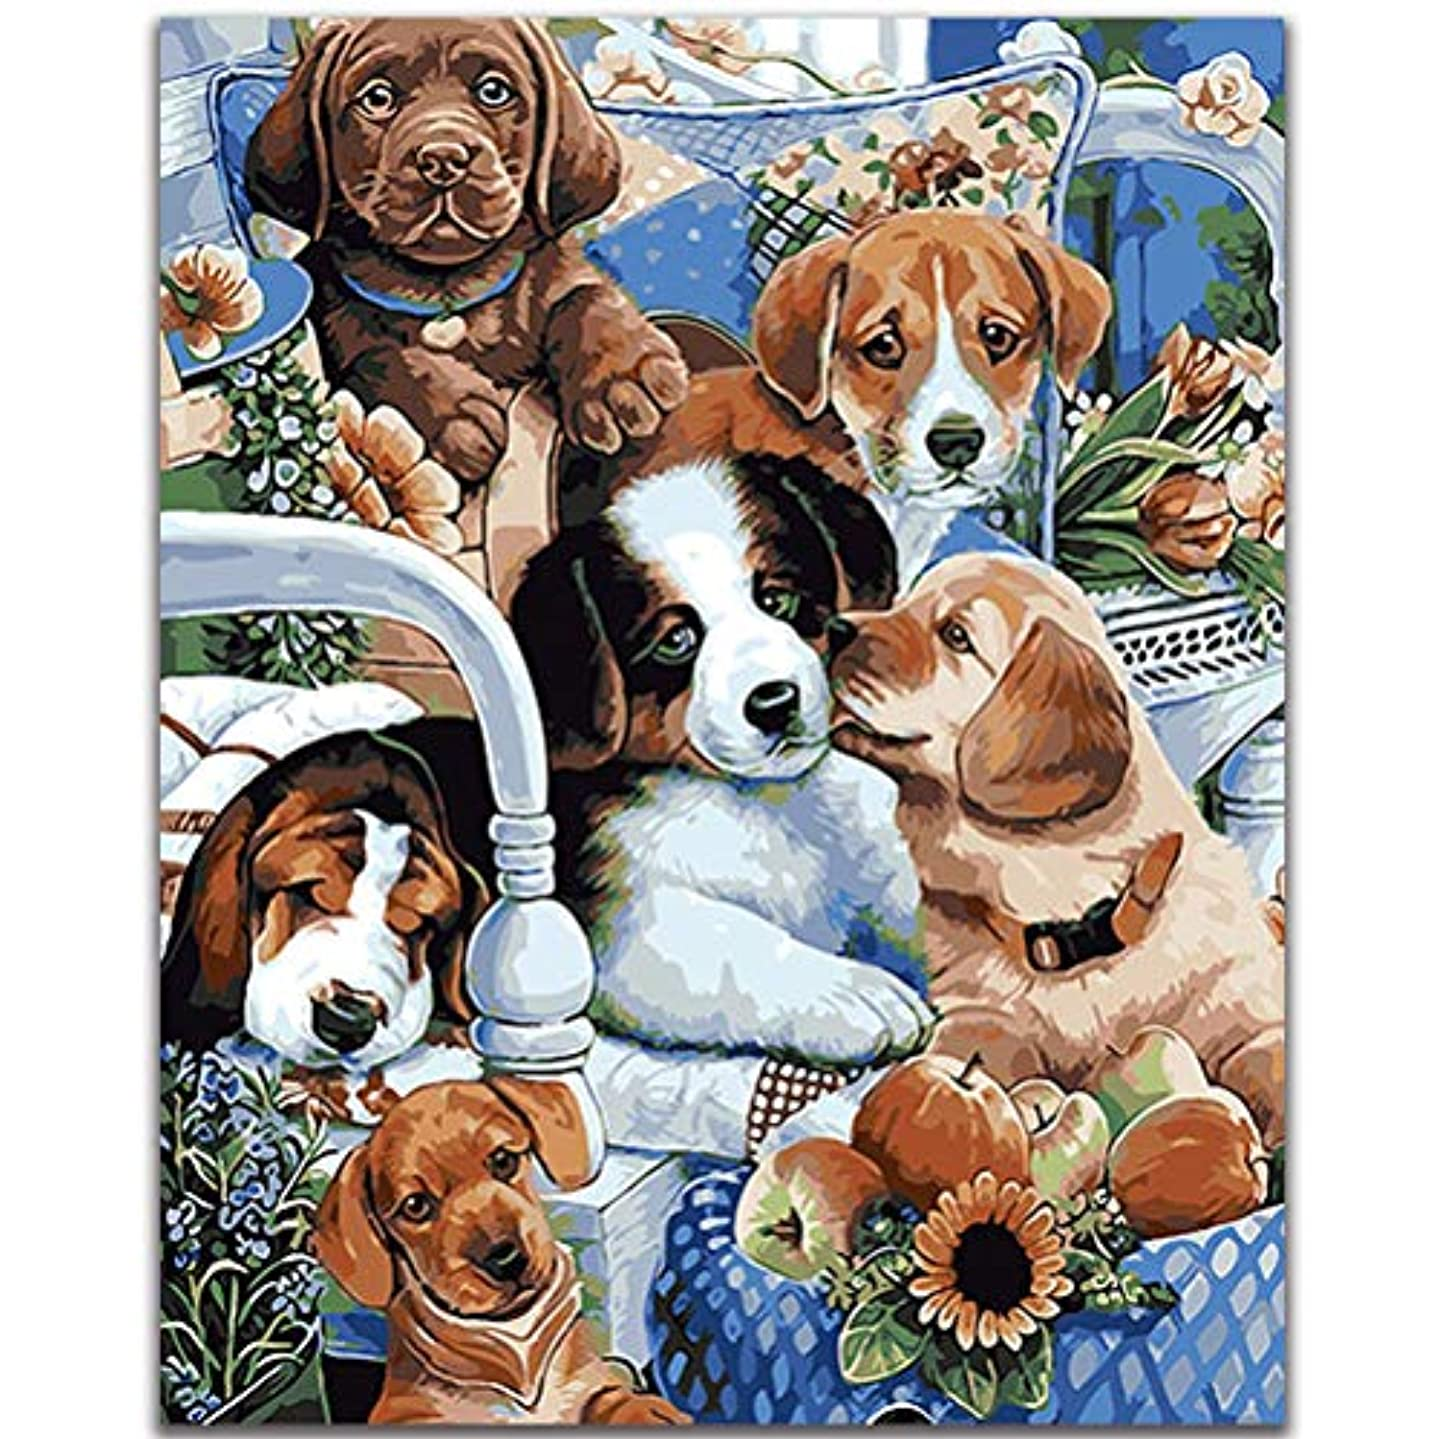 Fengtuo DIY Oil Painting Paint by Number Kit Canvas Painting Hand Colouring Decorative Picture-Lovely Dogs 16